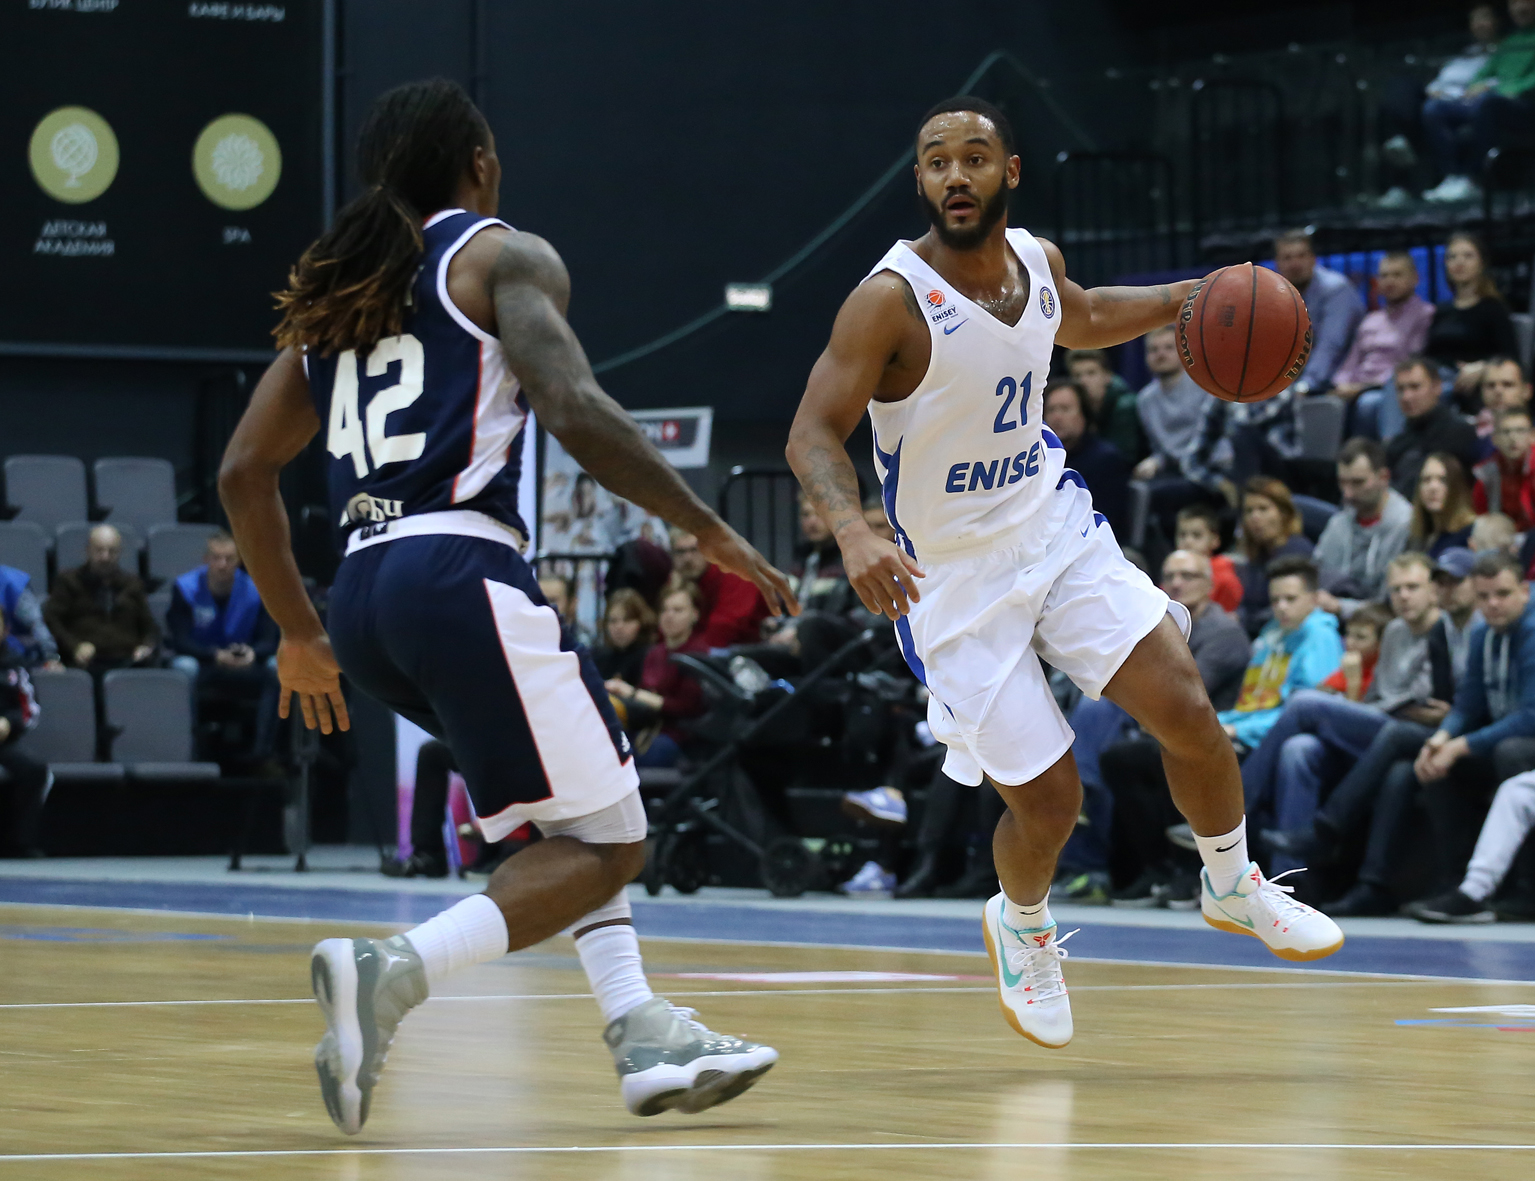 Roberson Erupts, Enisey Extends Tsmoki's Misery